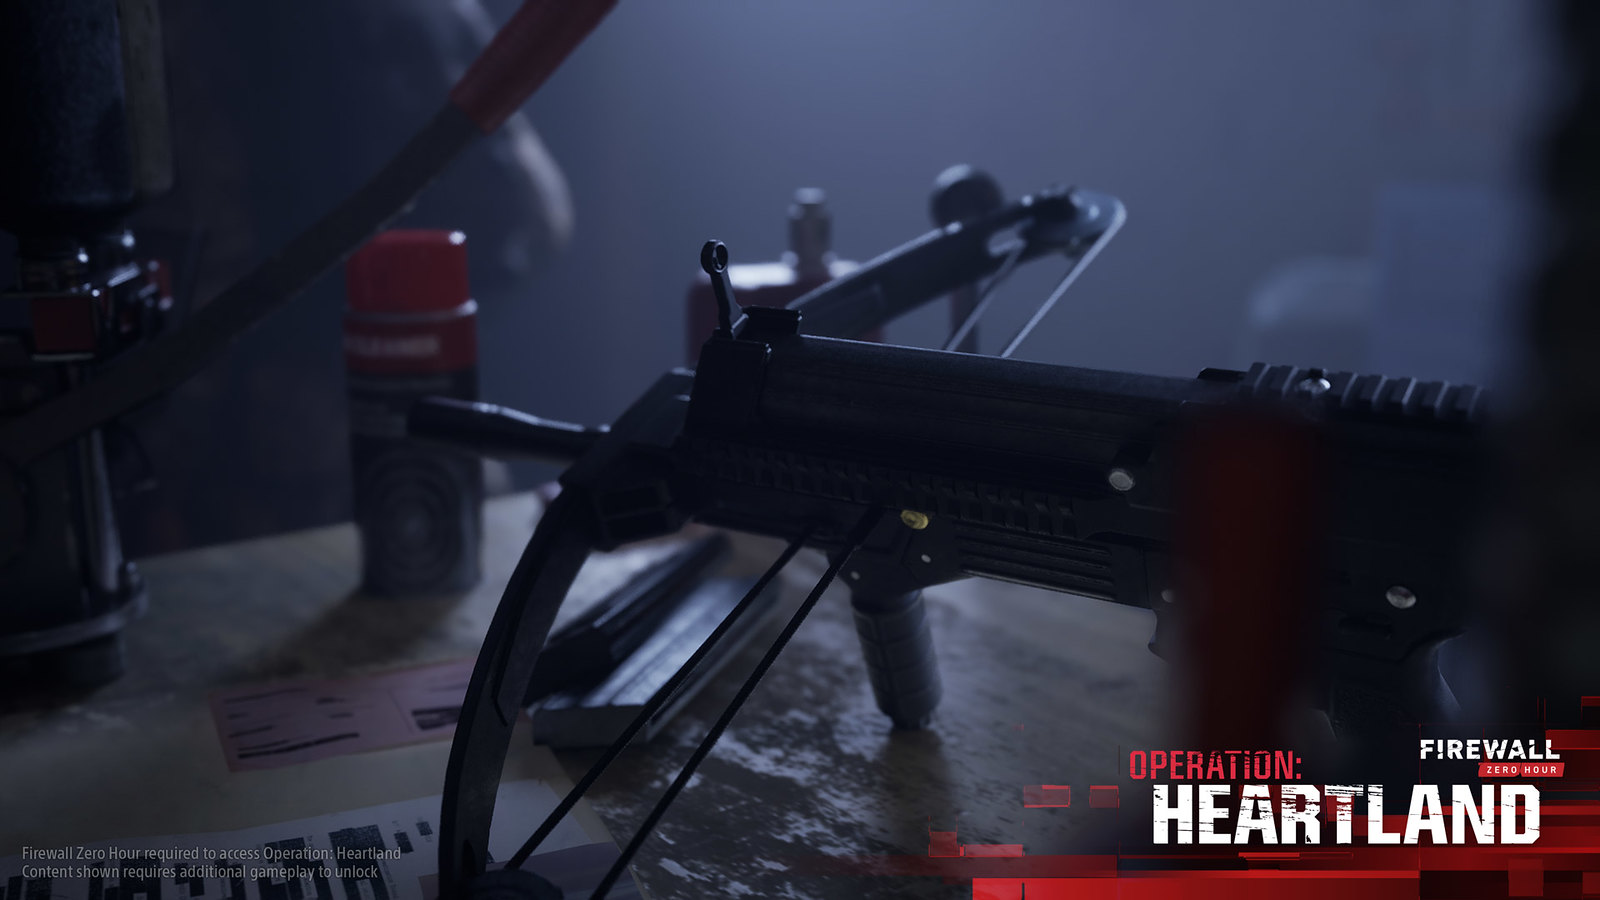 Firewall Zero Hour - Operation: Heartland